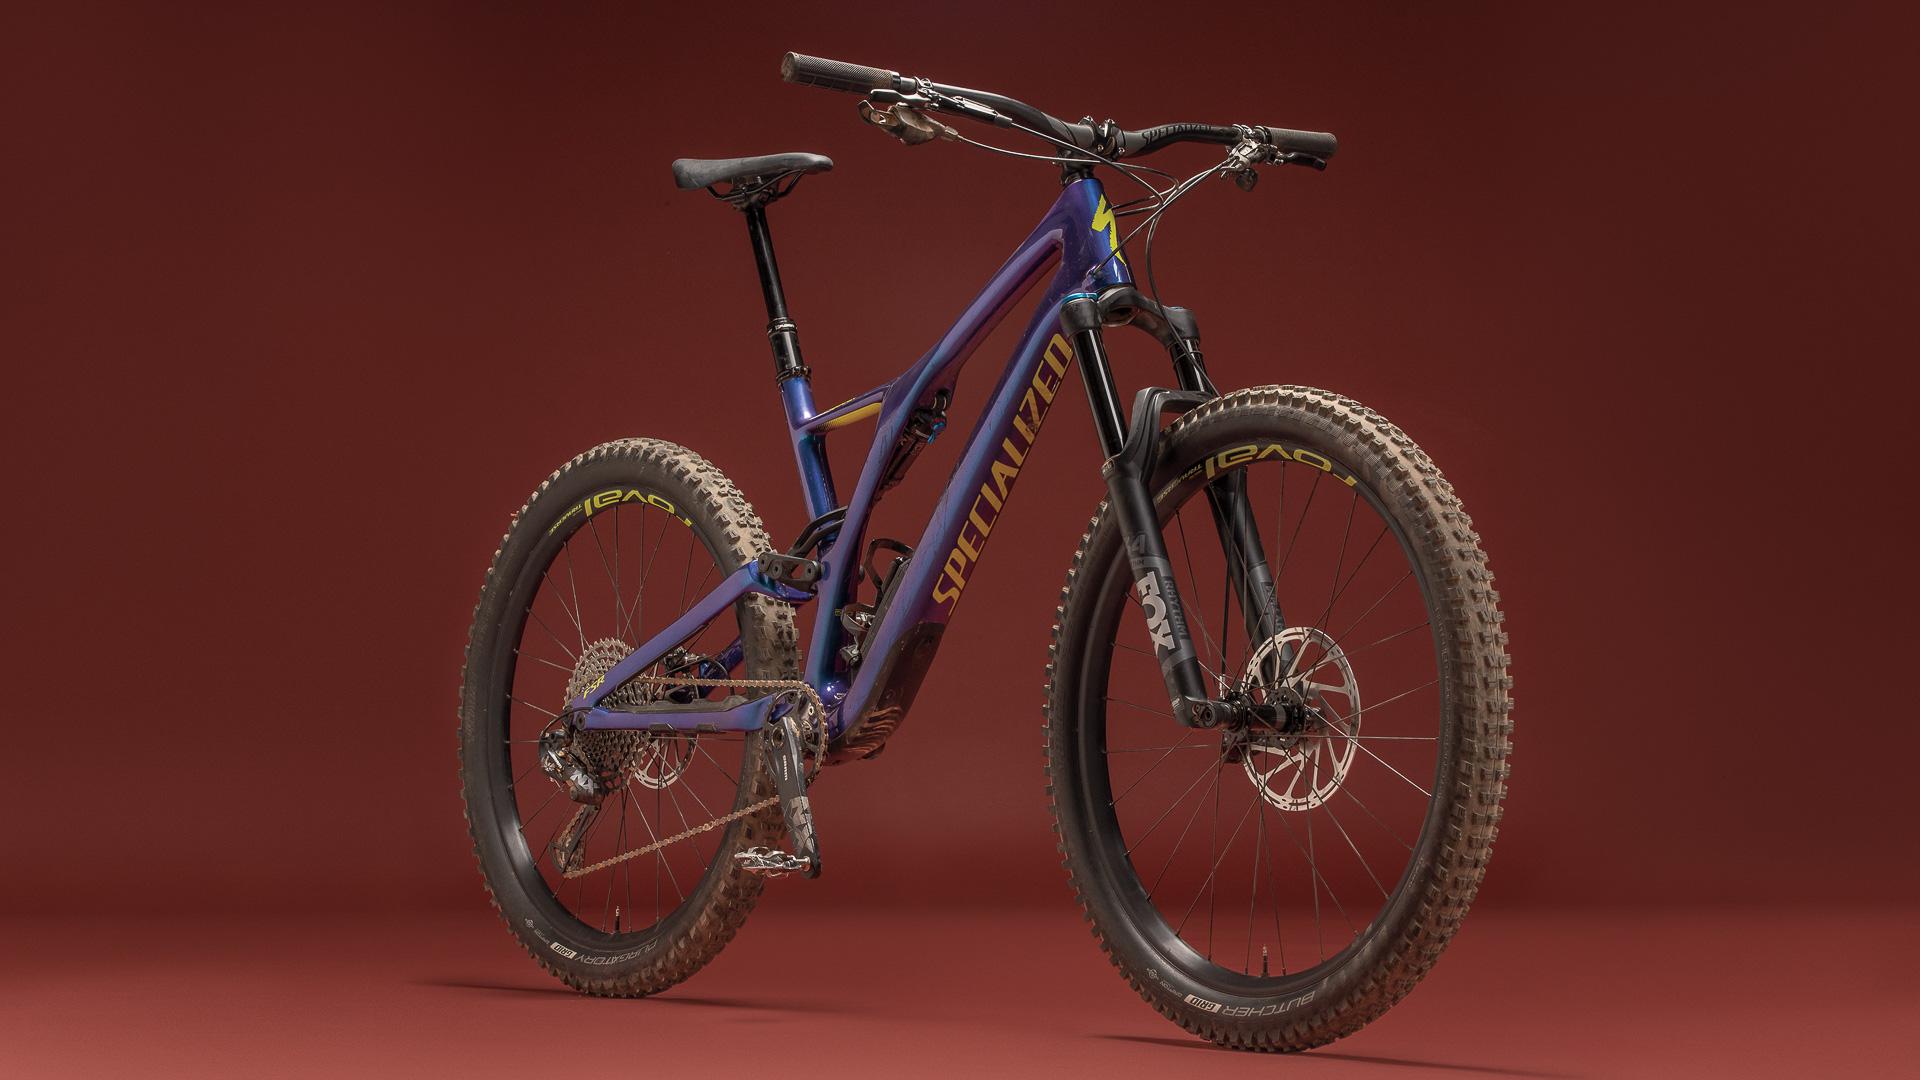 2e31b913474 Review: Specialized Stumpjumper 27.5 Comp Carbon | Bible of Bike ...